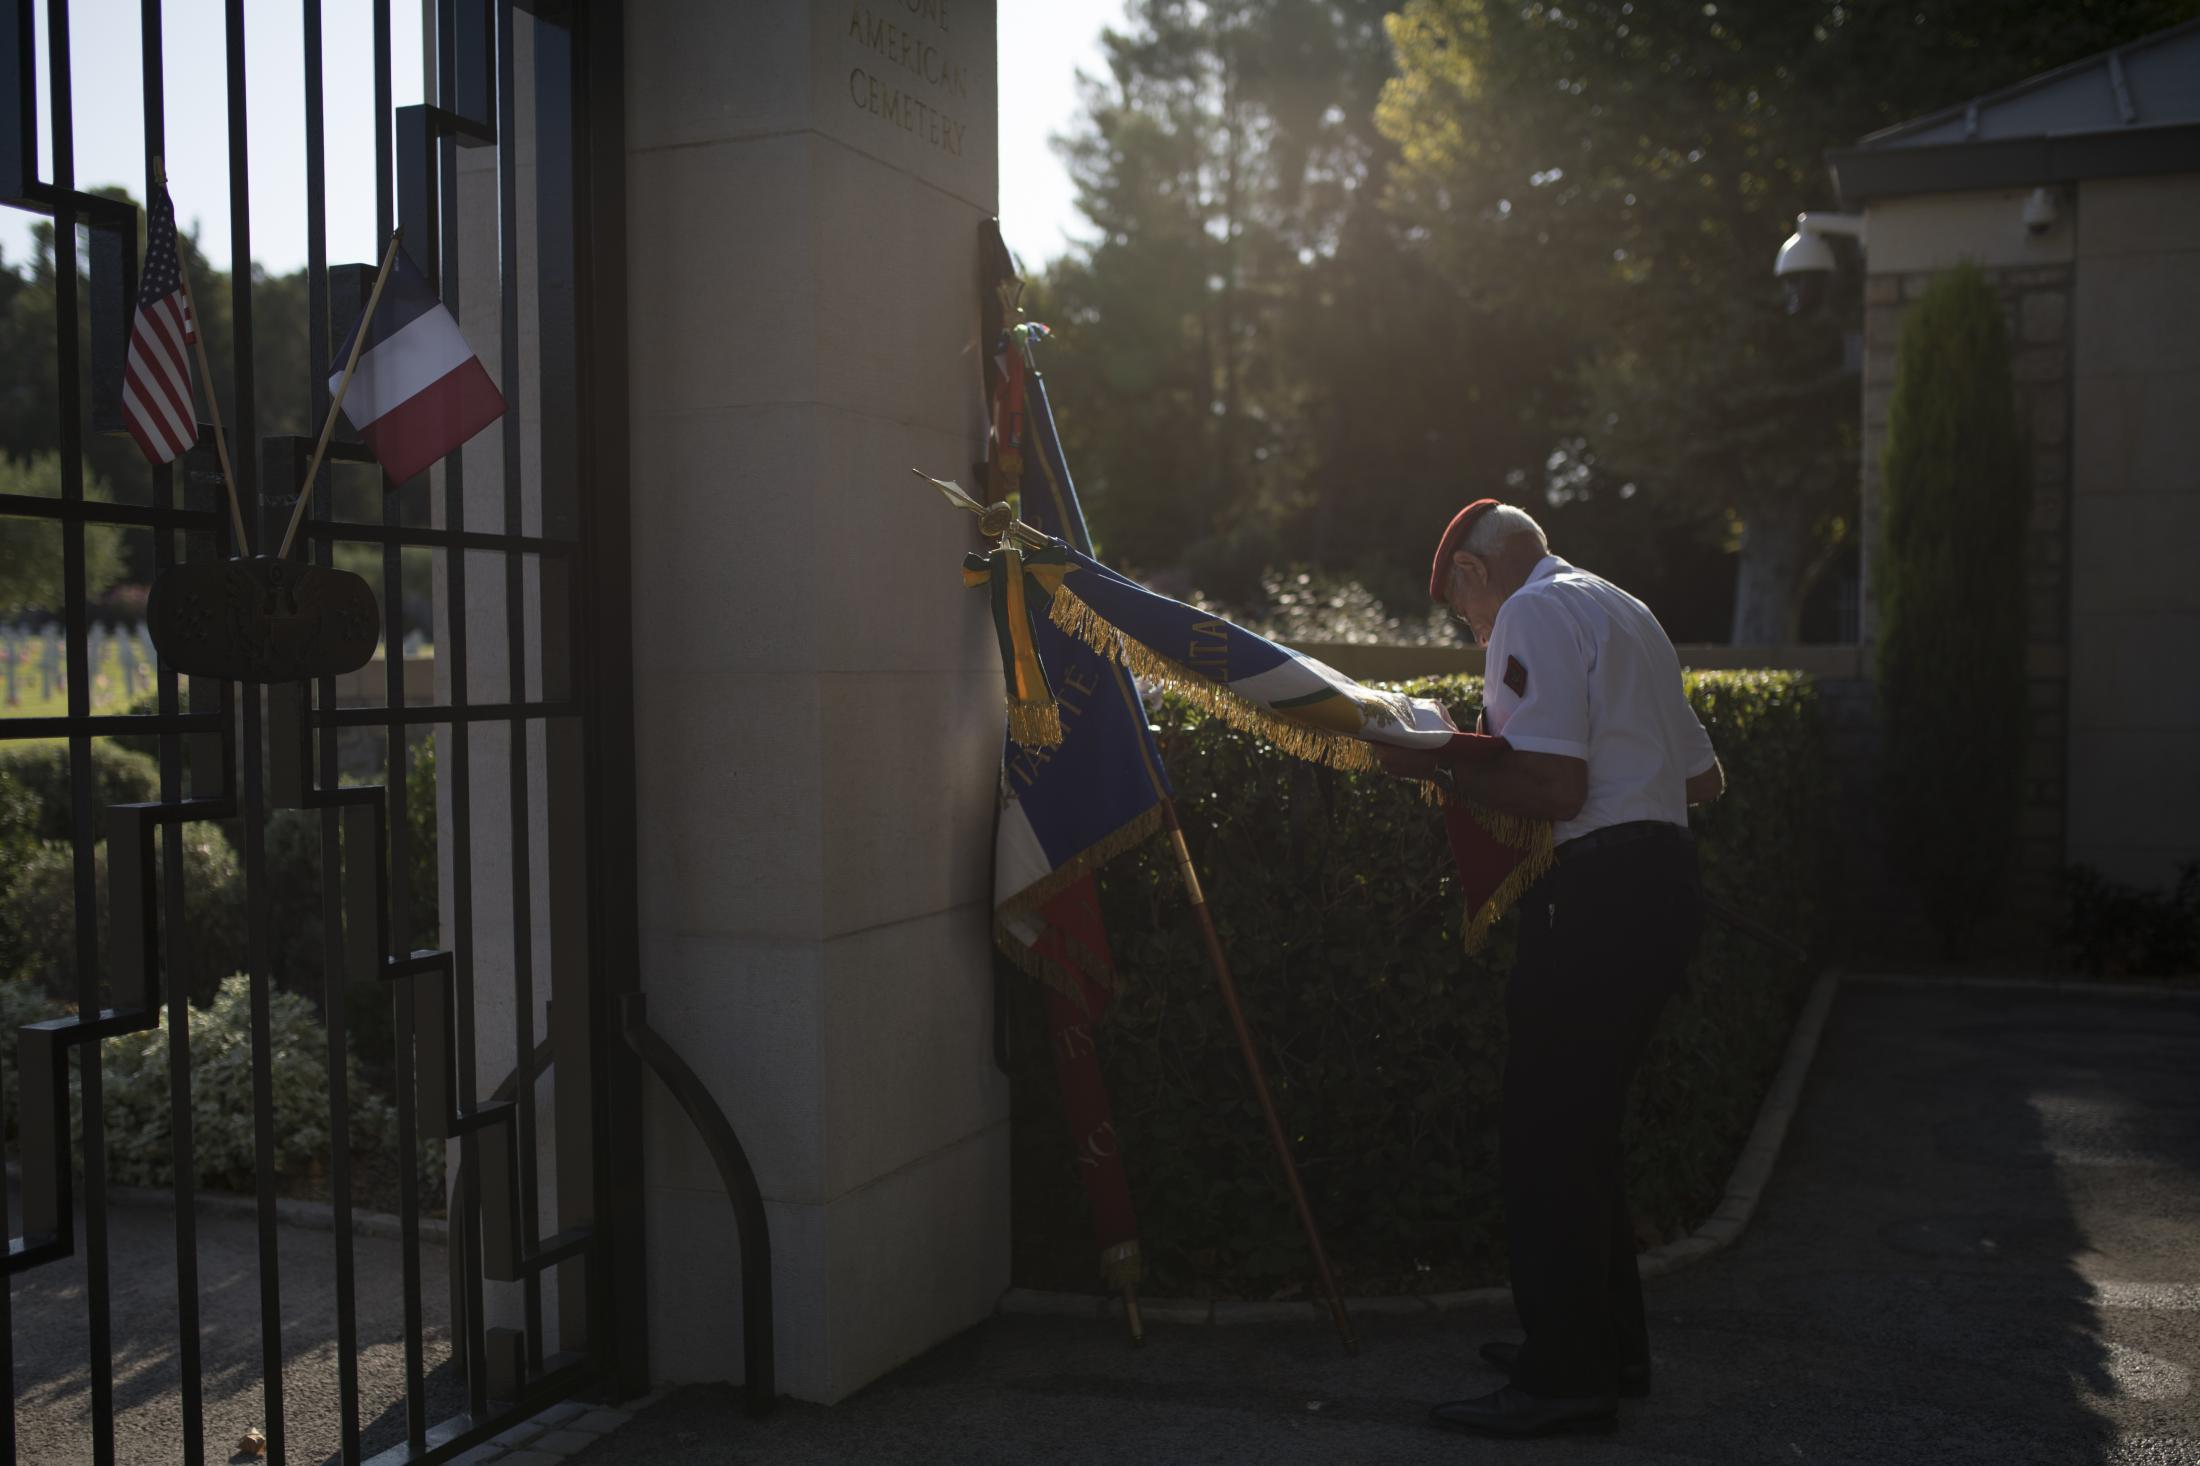 A veteran adjusts a French flag before a ceremony at the Rhone American Cemetery in Draguignan, southern France Friday Aug.16, 2019, as part of the commemorations to mark the 75th anniversary of the Allied landings in the South of France. The event will remember Operation Dragoon, which enabled the liberation of France from Nazi occupation. (AP Photo/Daniel Cole)